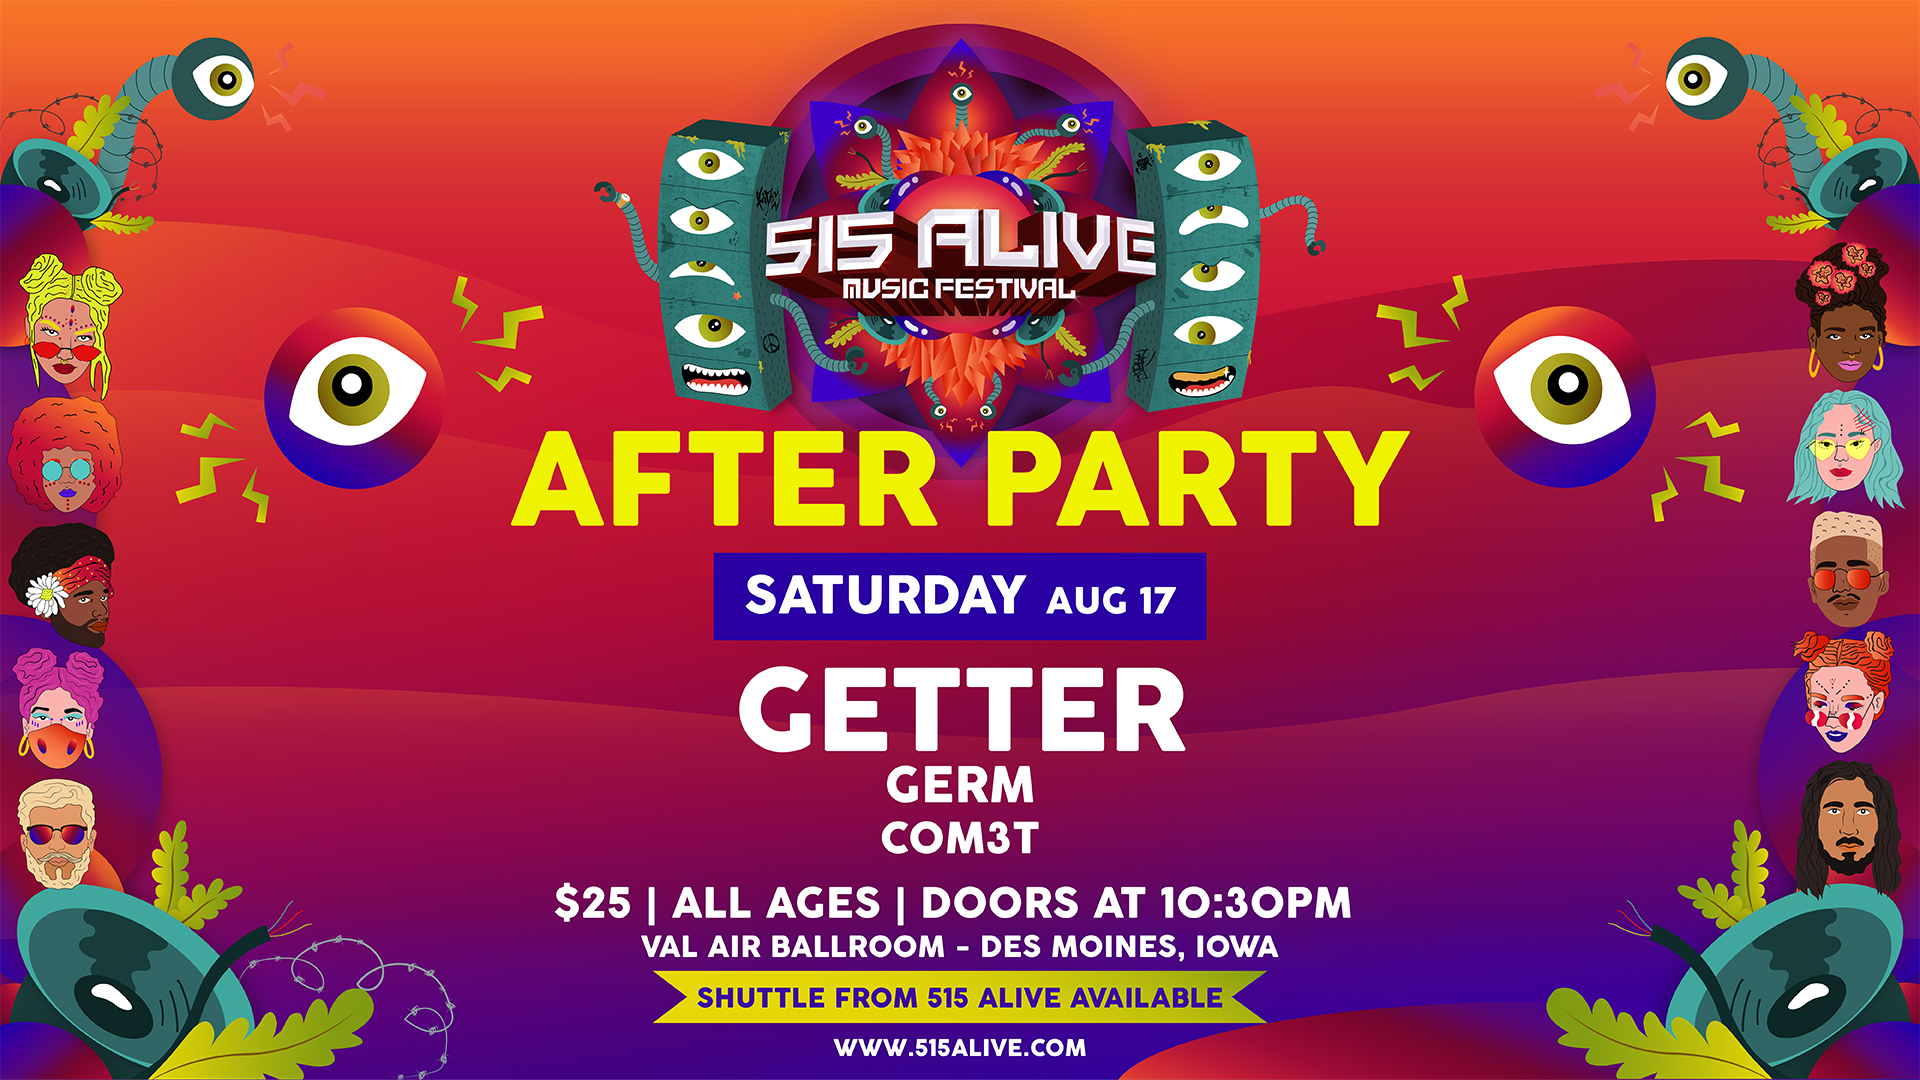 515 Alive 2019 Facebook Event 1920x1080 After Party Friday & Saturday-2.jpg